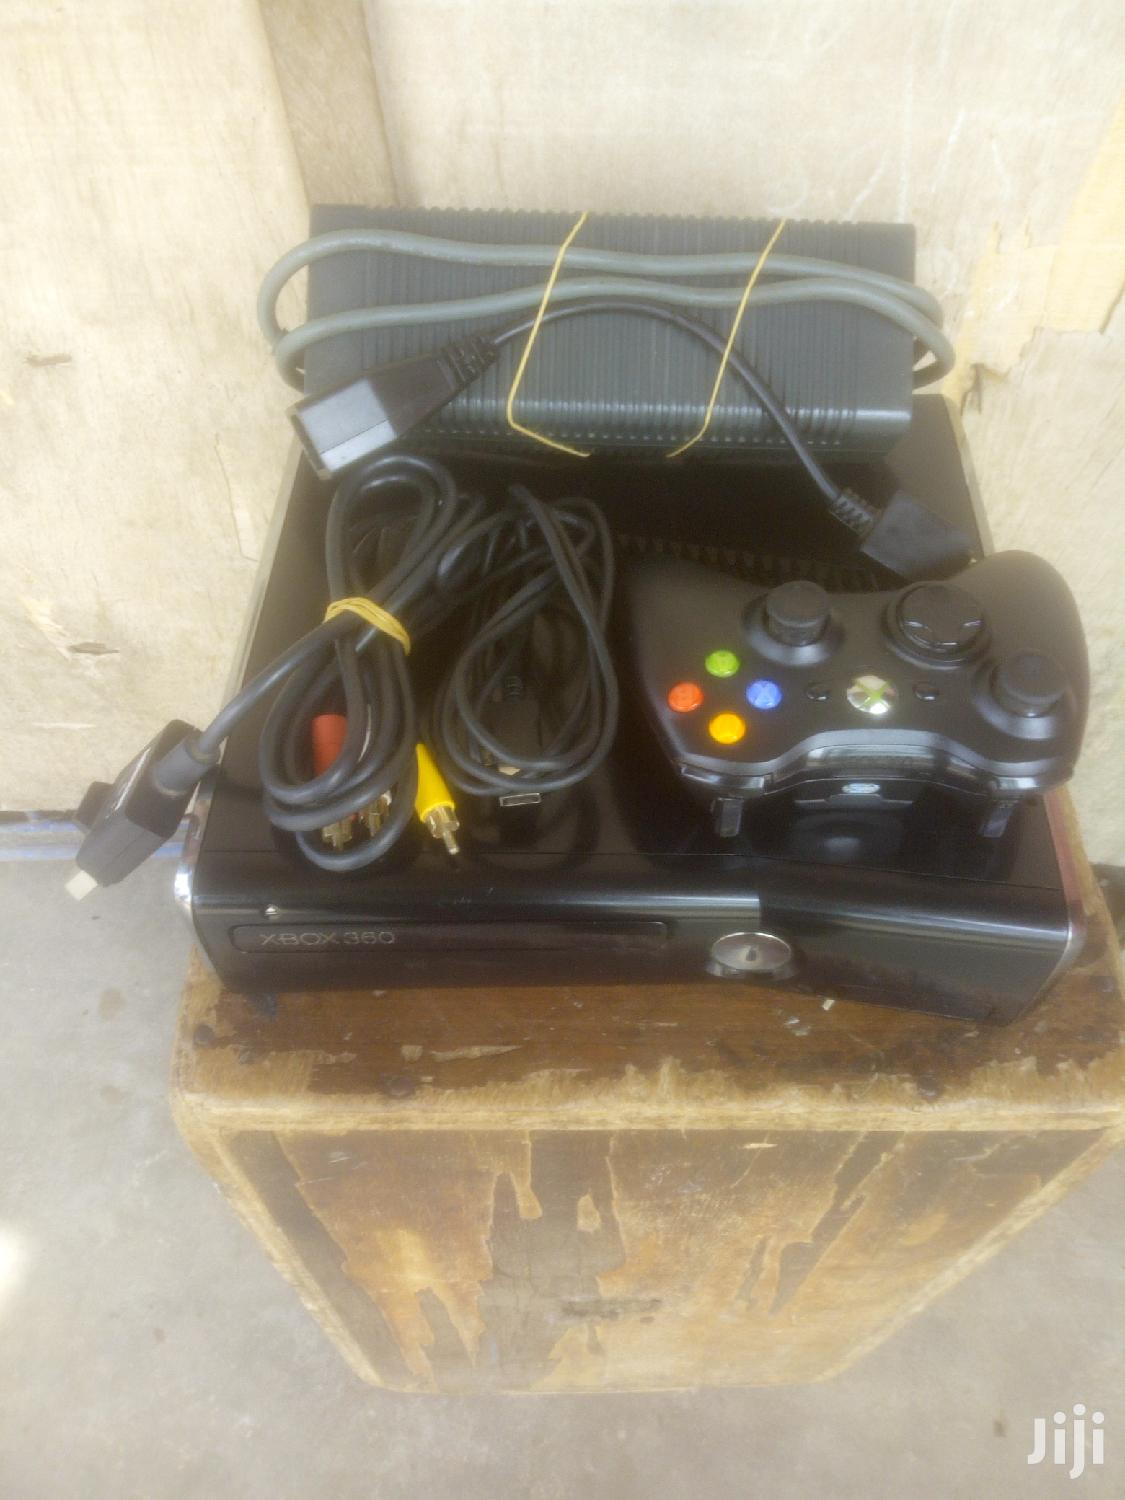 Slim Latest Xbox 360, Loaded With 14 Games